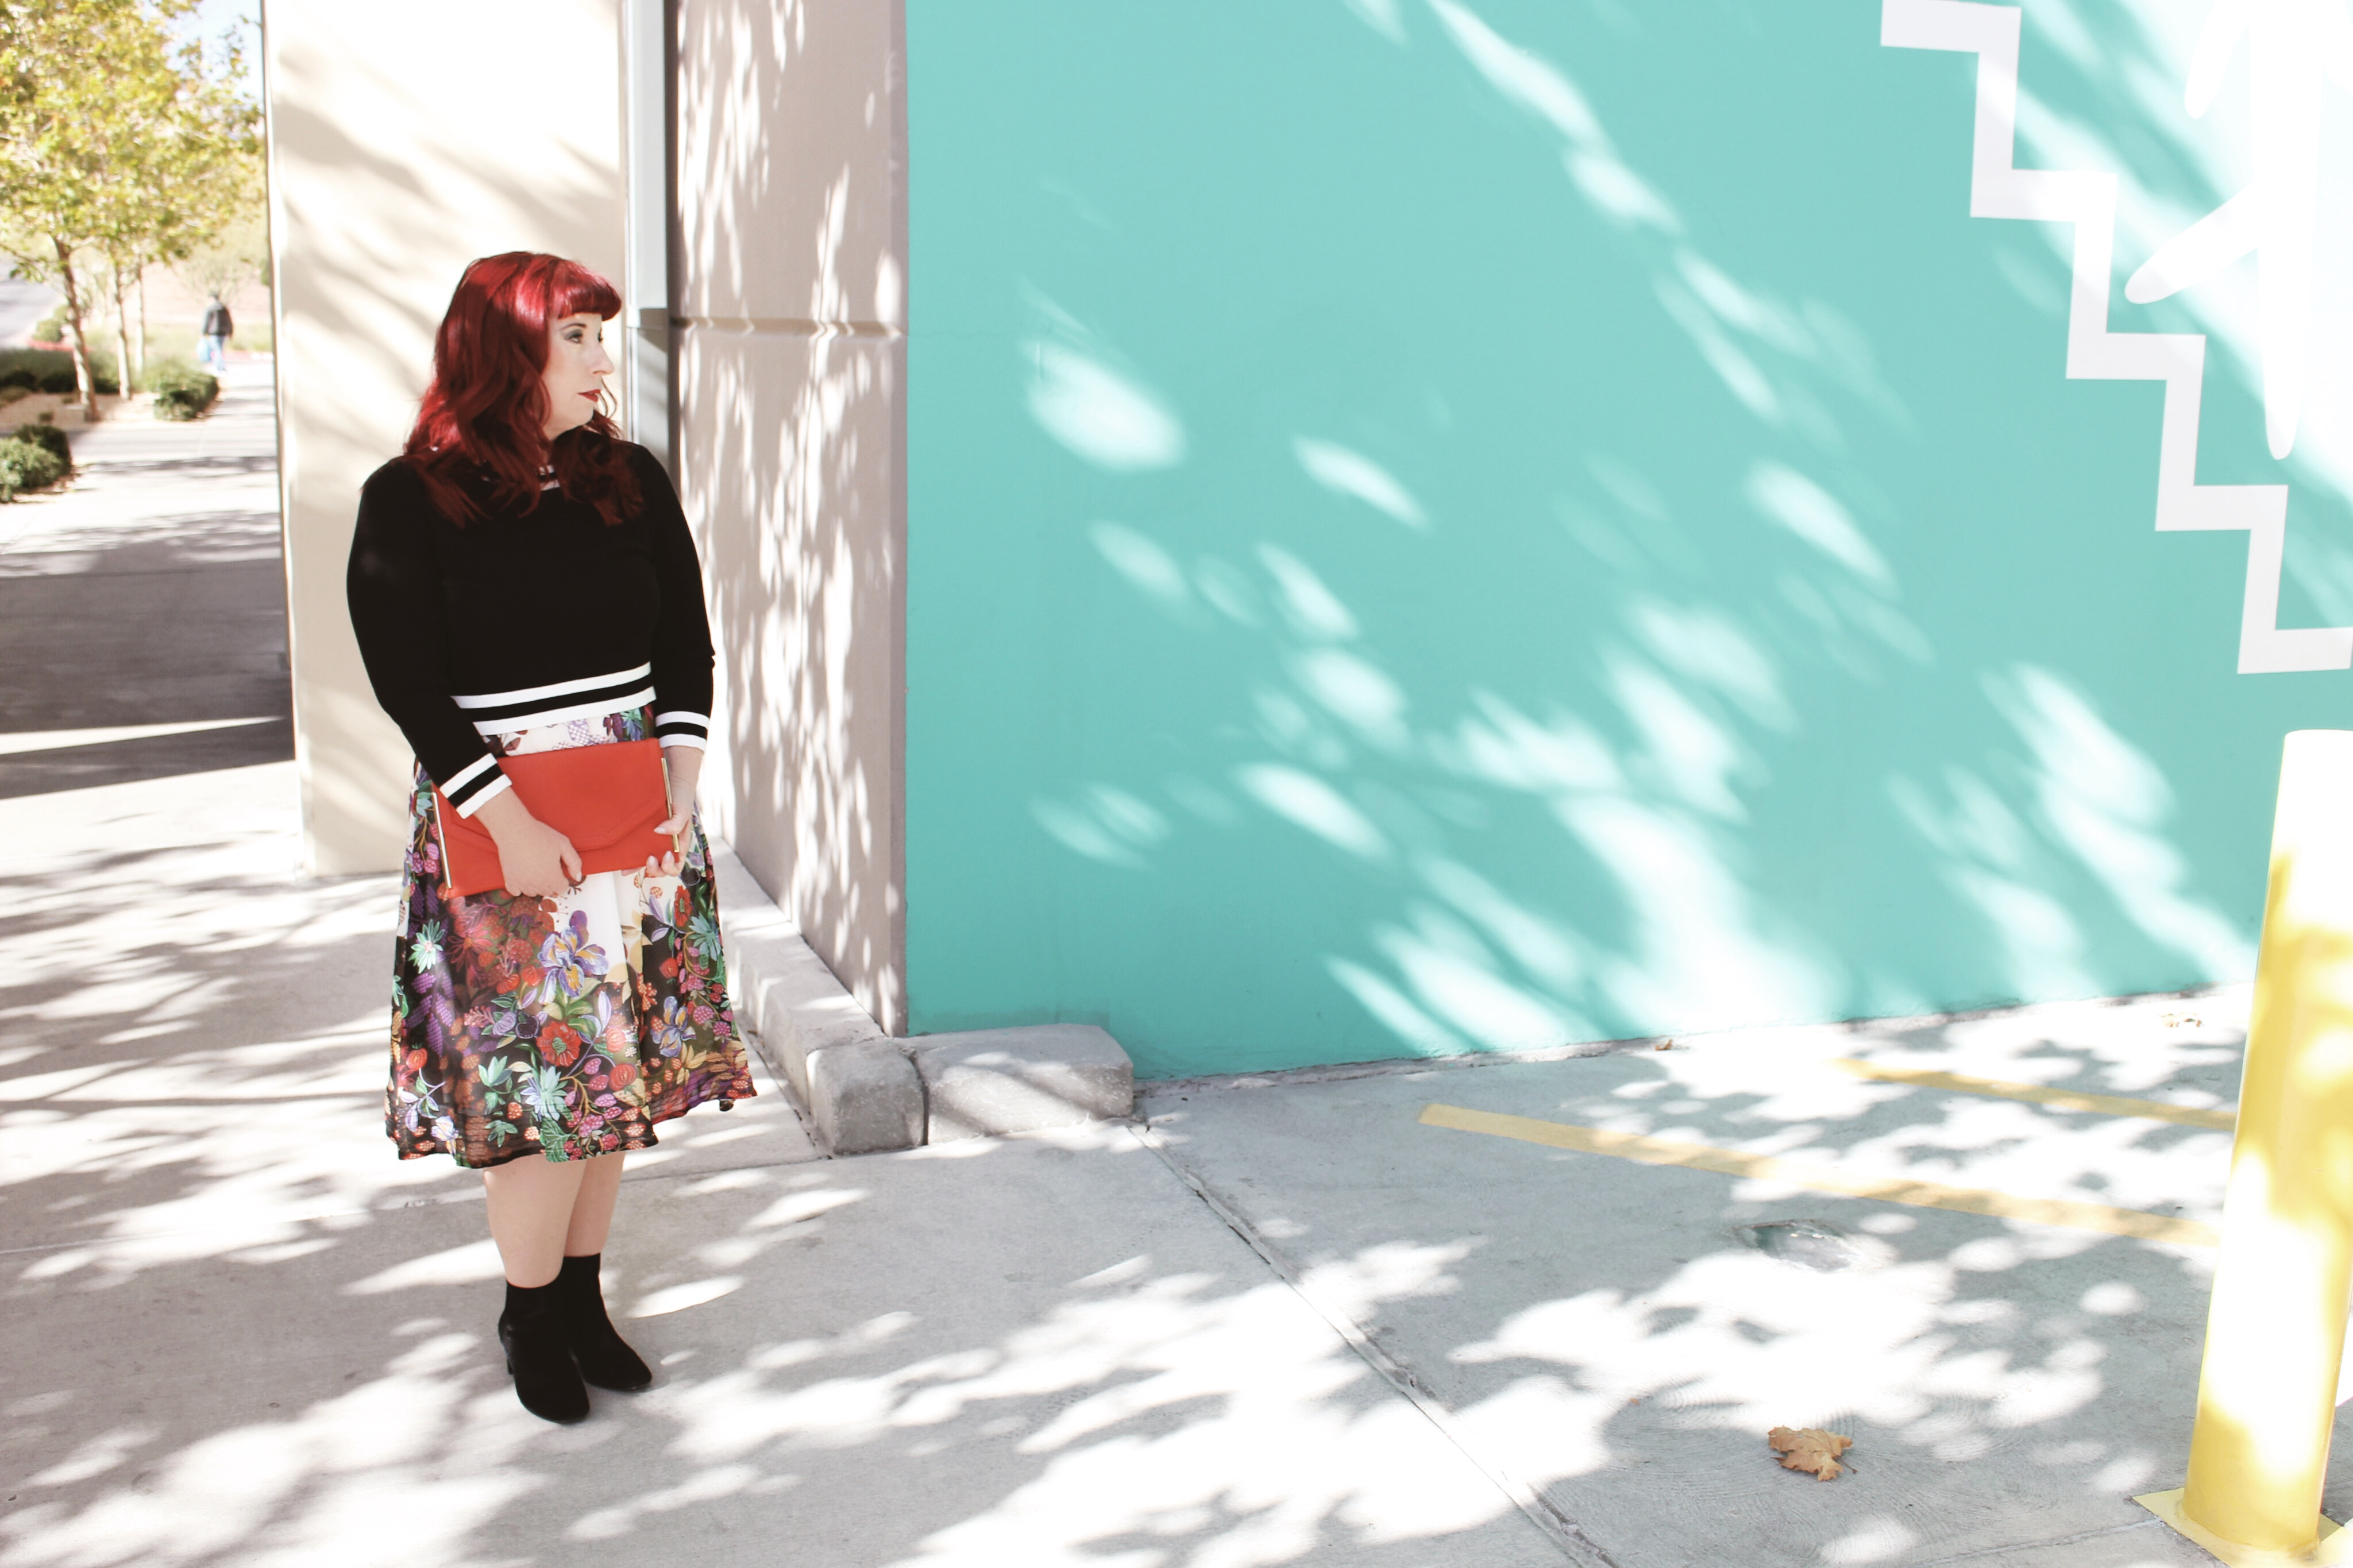 ae71a0ba40b Crop It with Seasonal Transition Pieces - Christie Moeller